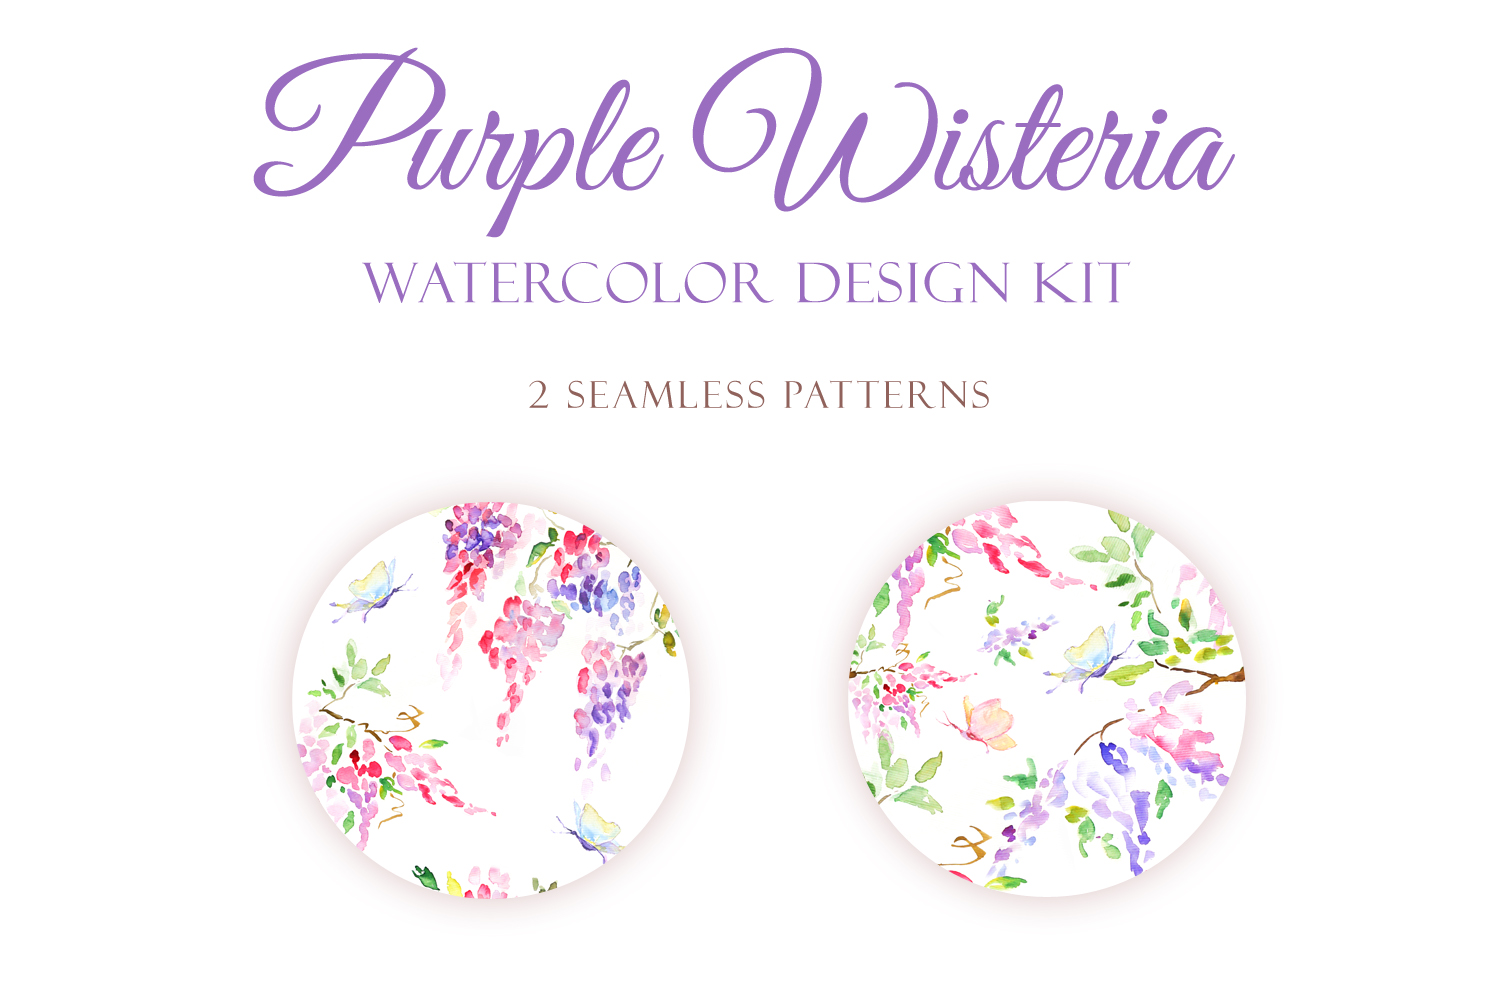 Watercolor Purple Wisteria - Handmade clipart and design kit  example image 4